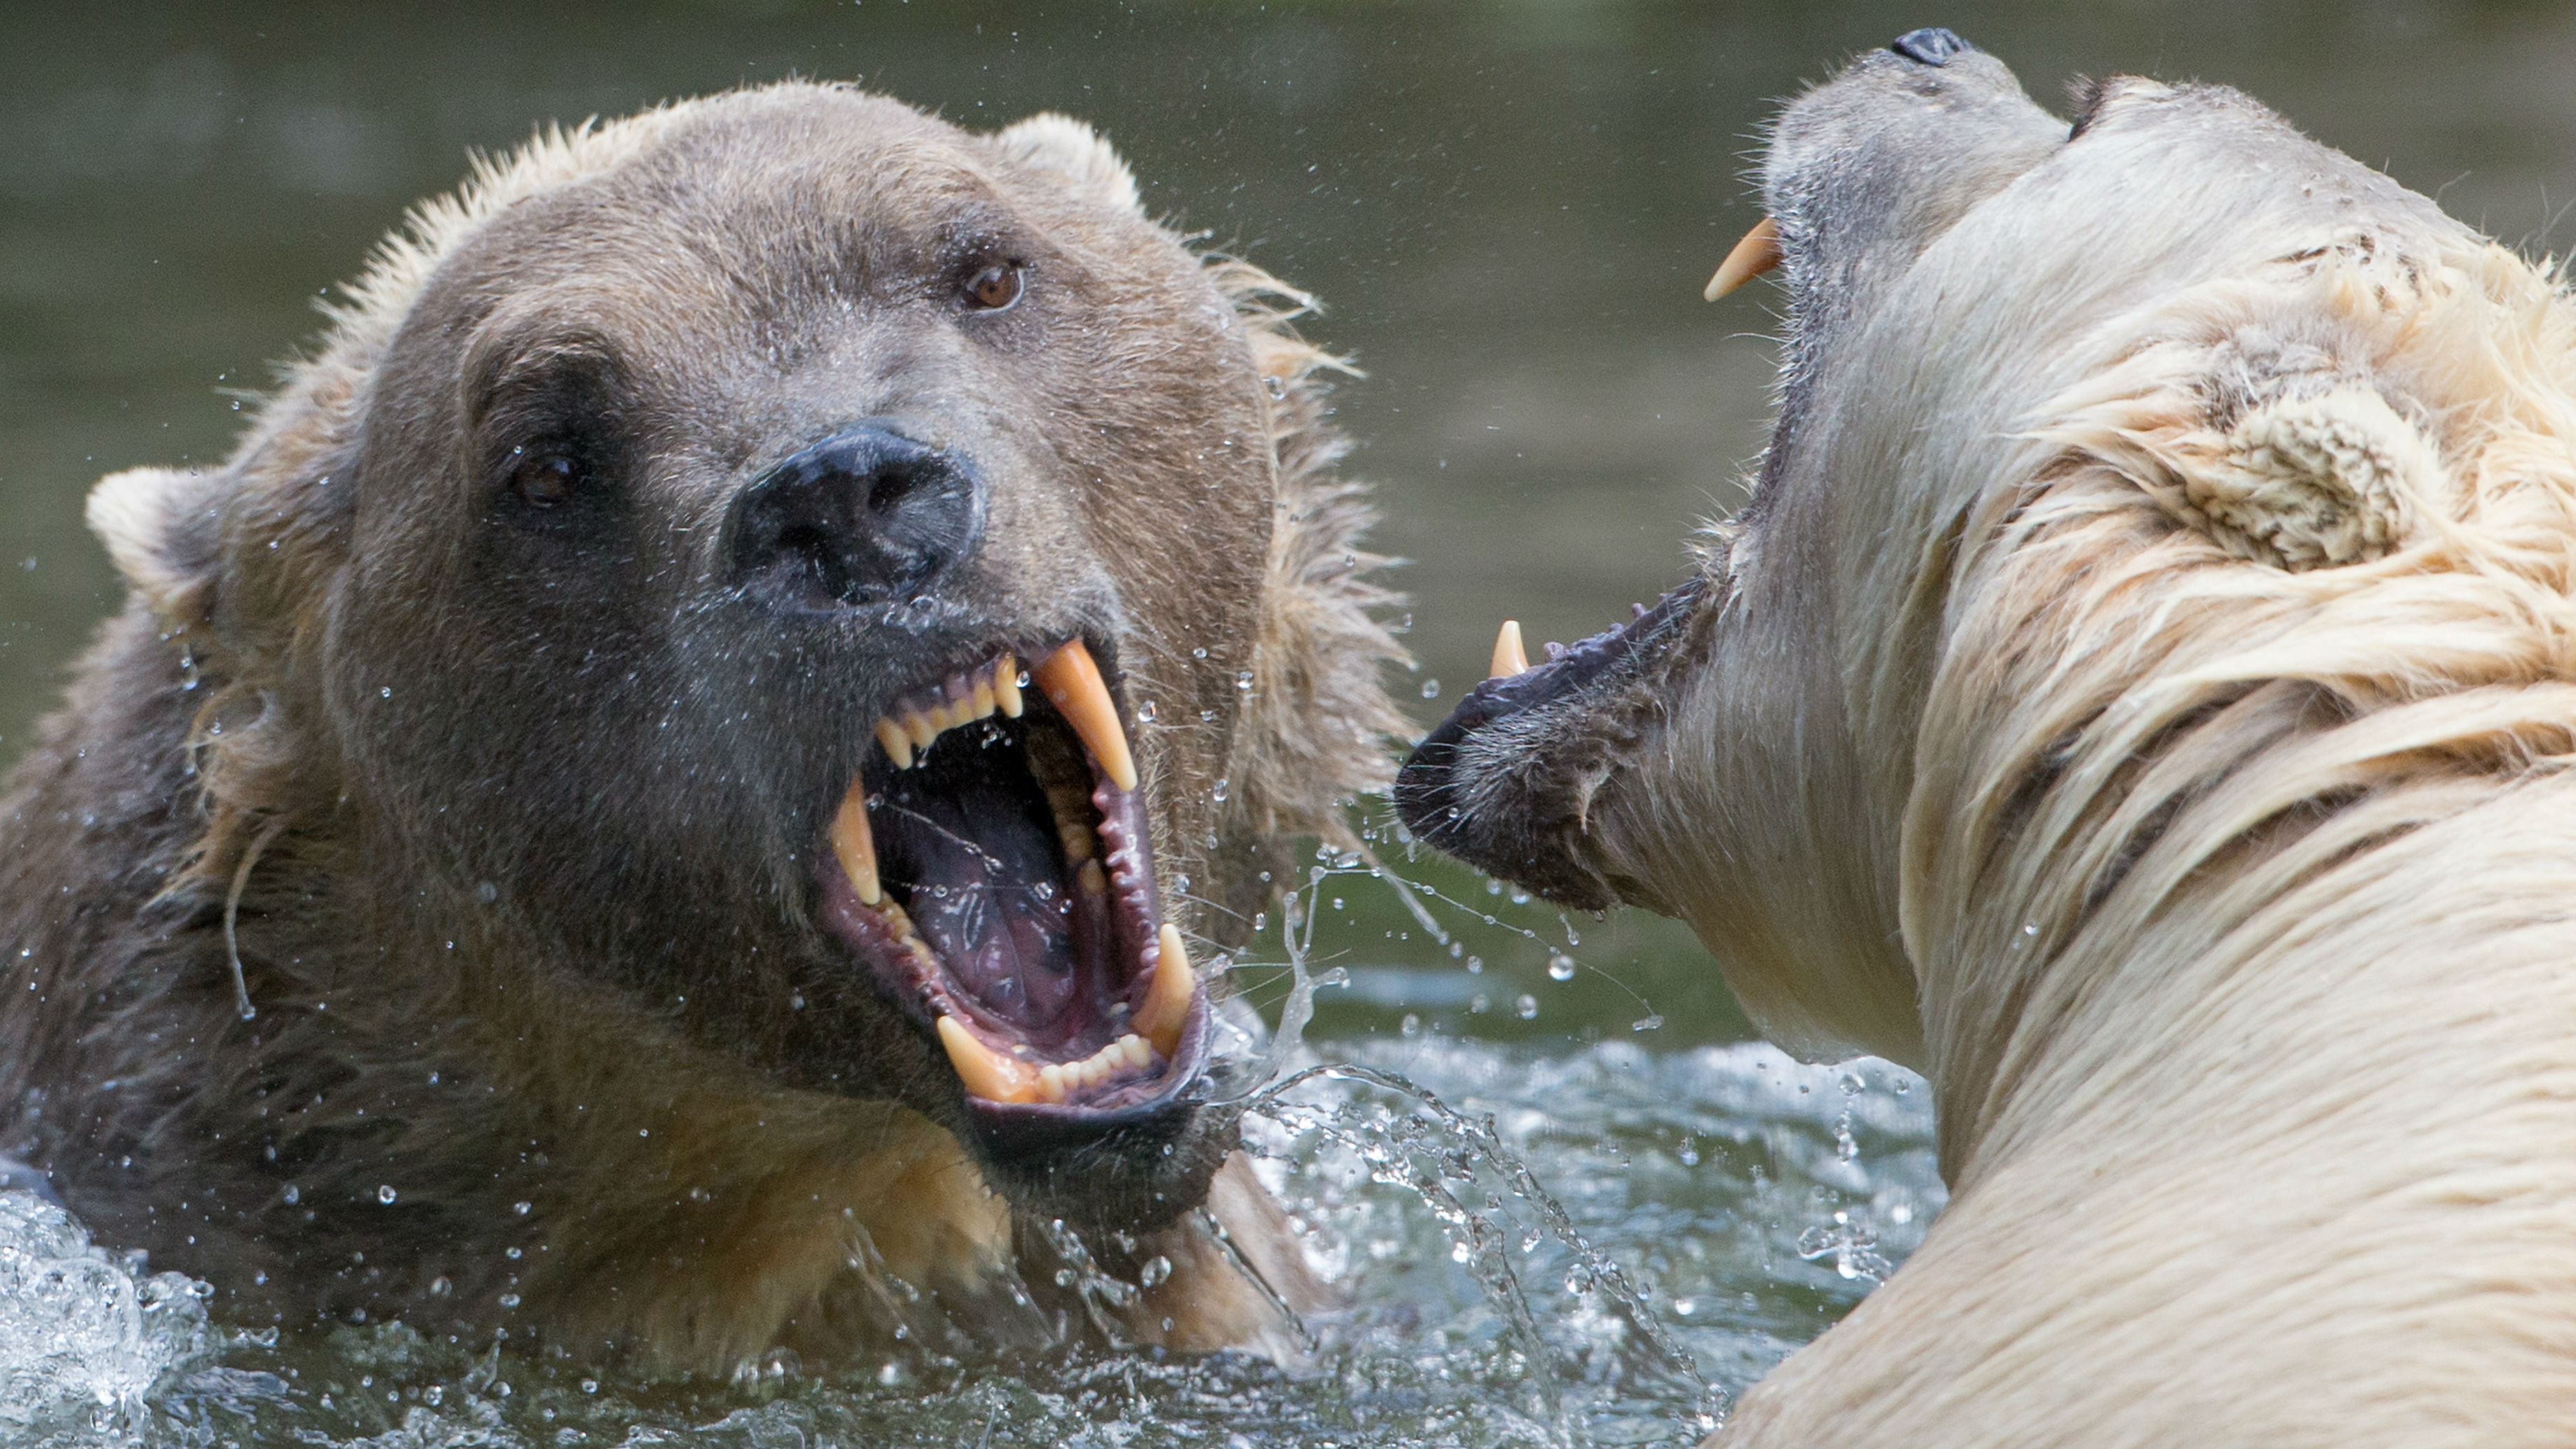 A picture made available on 15 June 2015 shows hybrid bears Tips (R) and her brother Taps at the Osnabrueck Zoo, in Osnabrueck, Germany, 11 June 2015. Hybrid bears (also known as Cappuccino-Bears) are a mix of polar bear and grizzly bear and are also called nanulak, pizzly bear, grolar bear and a variety of other names.